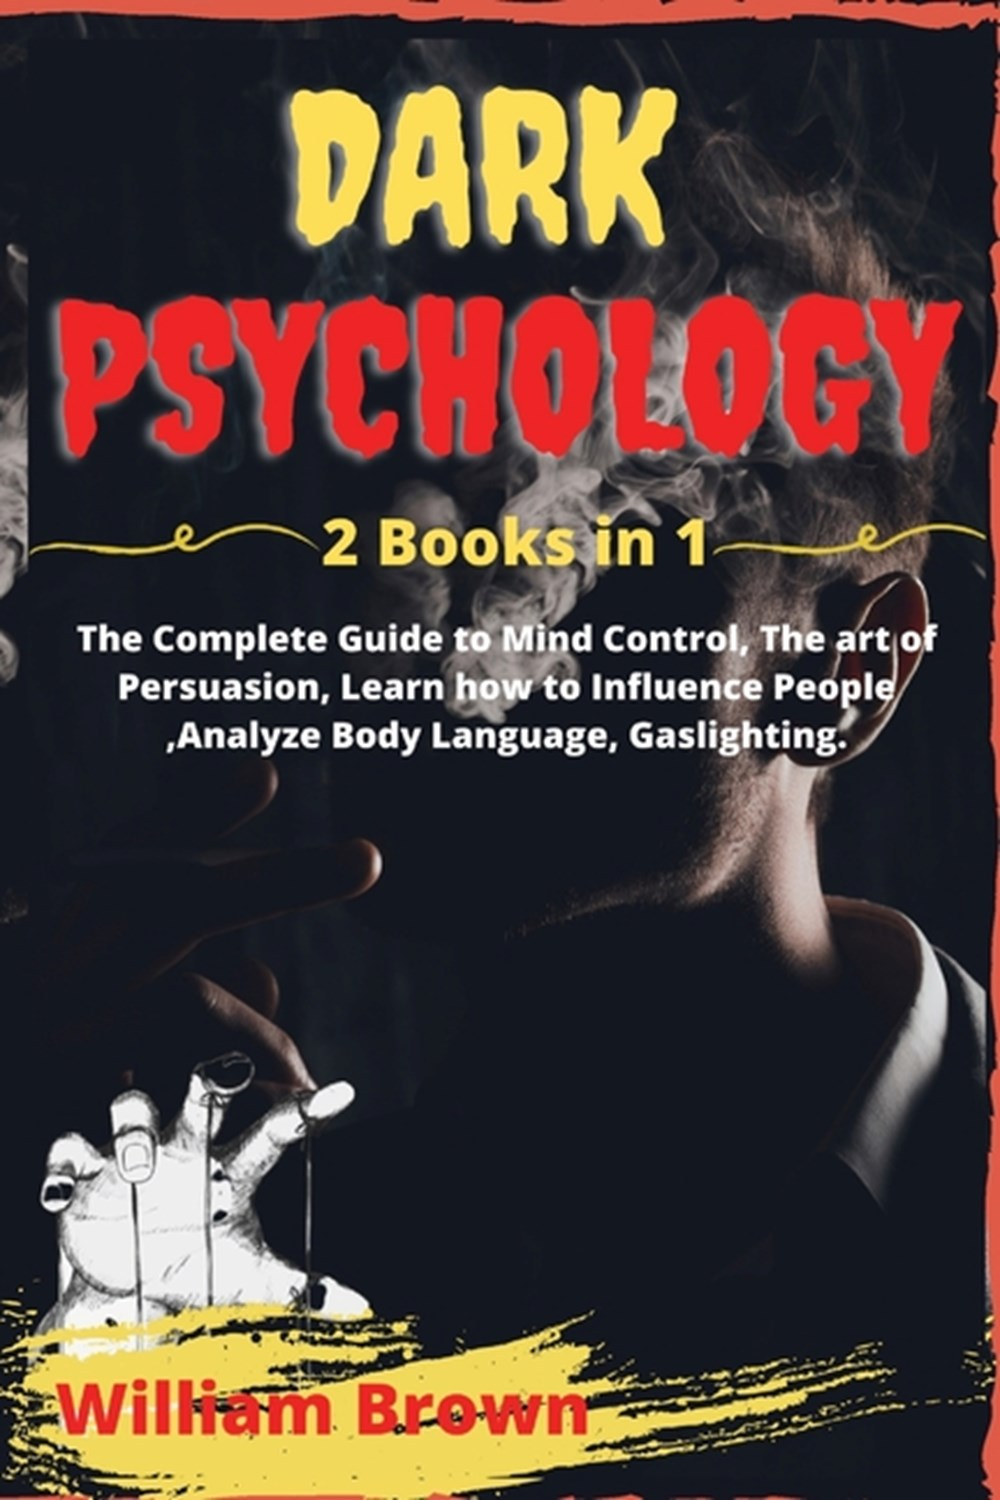 Dark Psychology -2 Books in 1- The Complete Guide to Mind Control, The art of Persuasion, Learn how